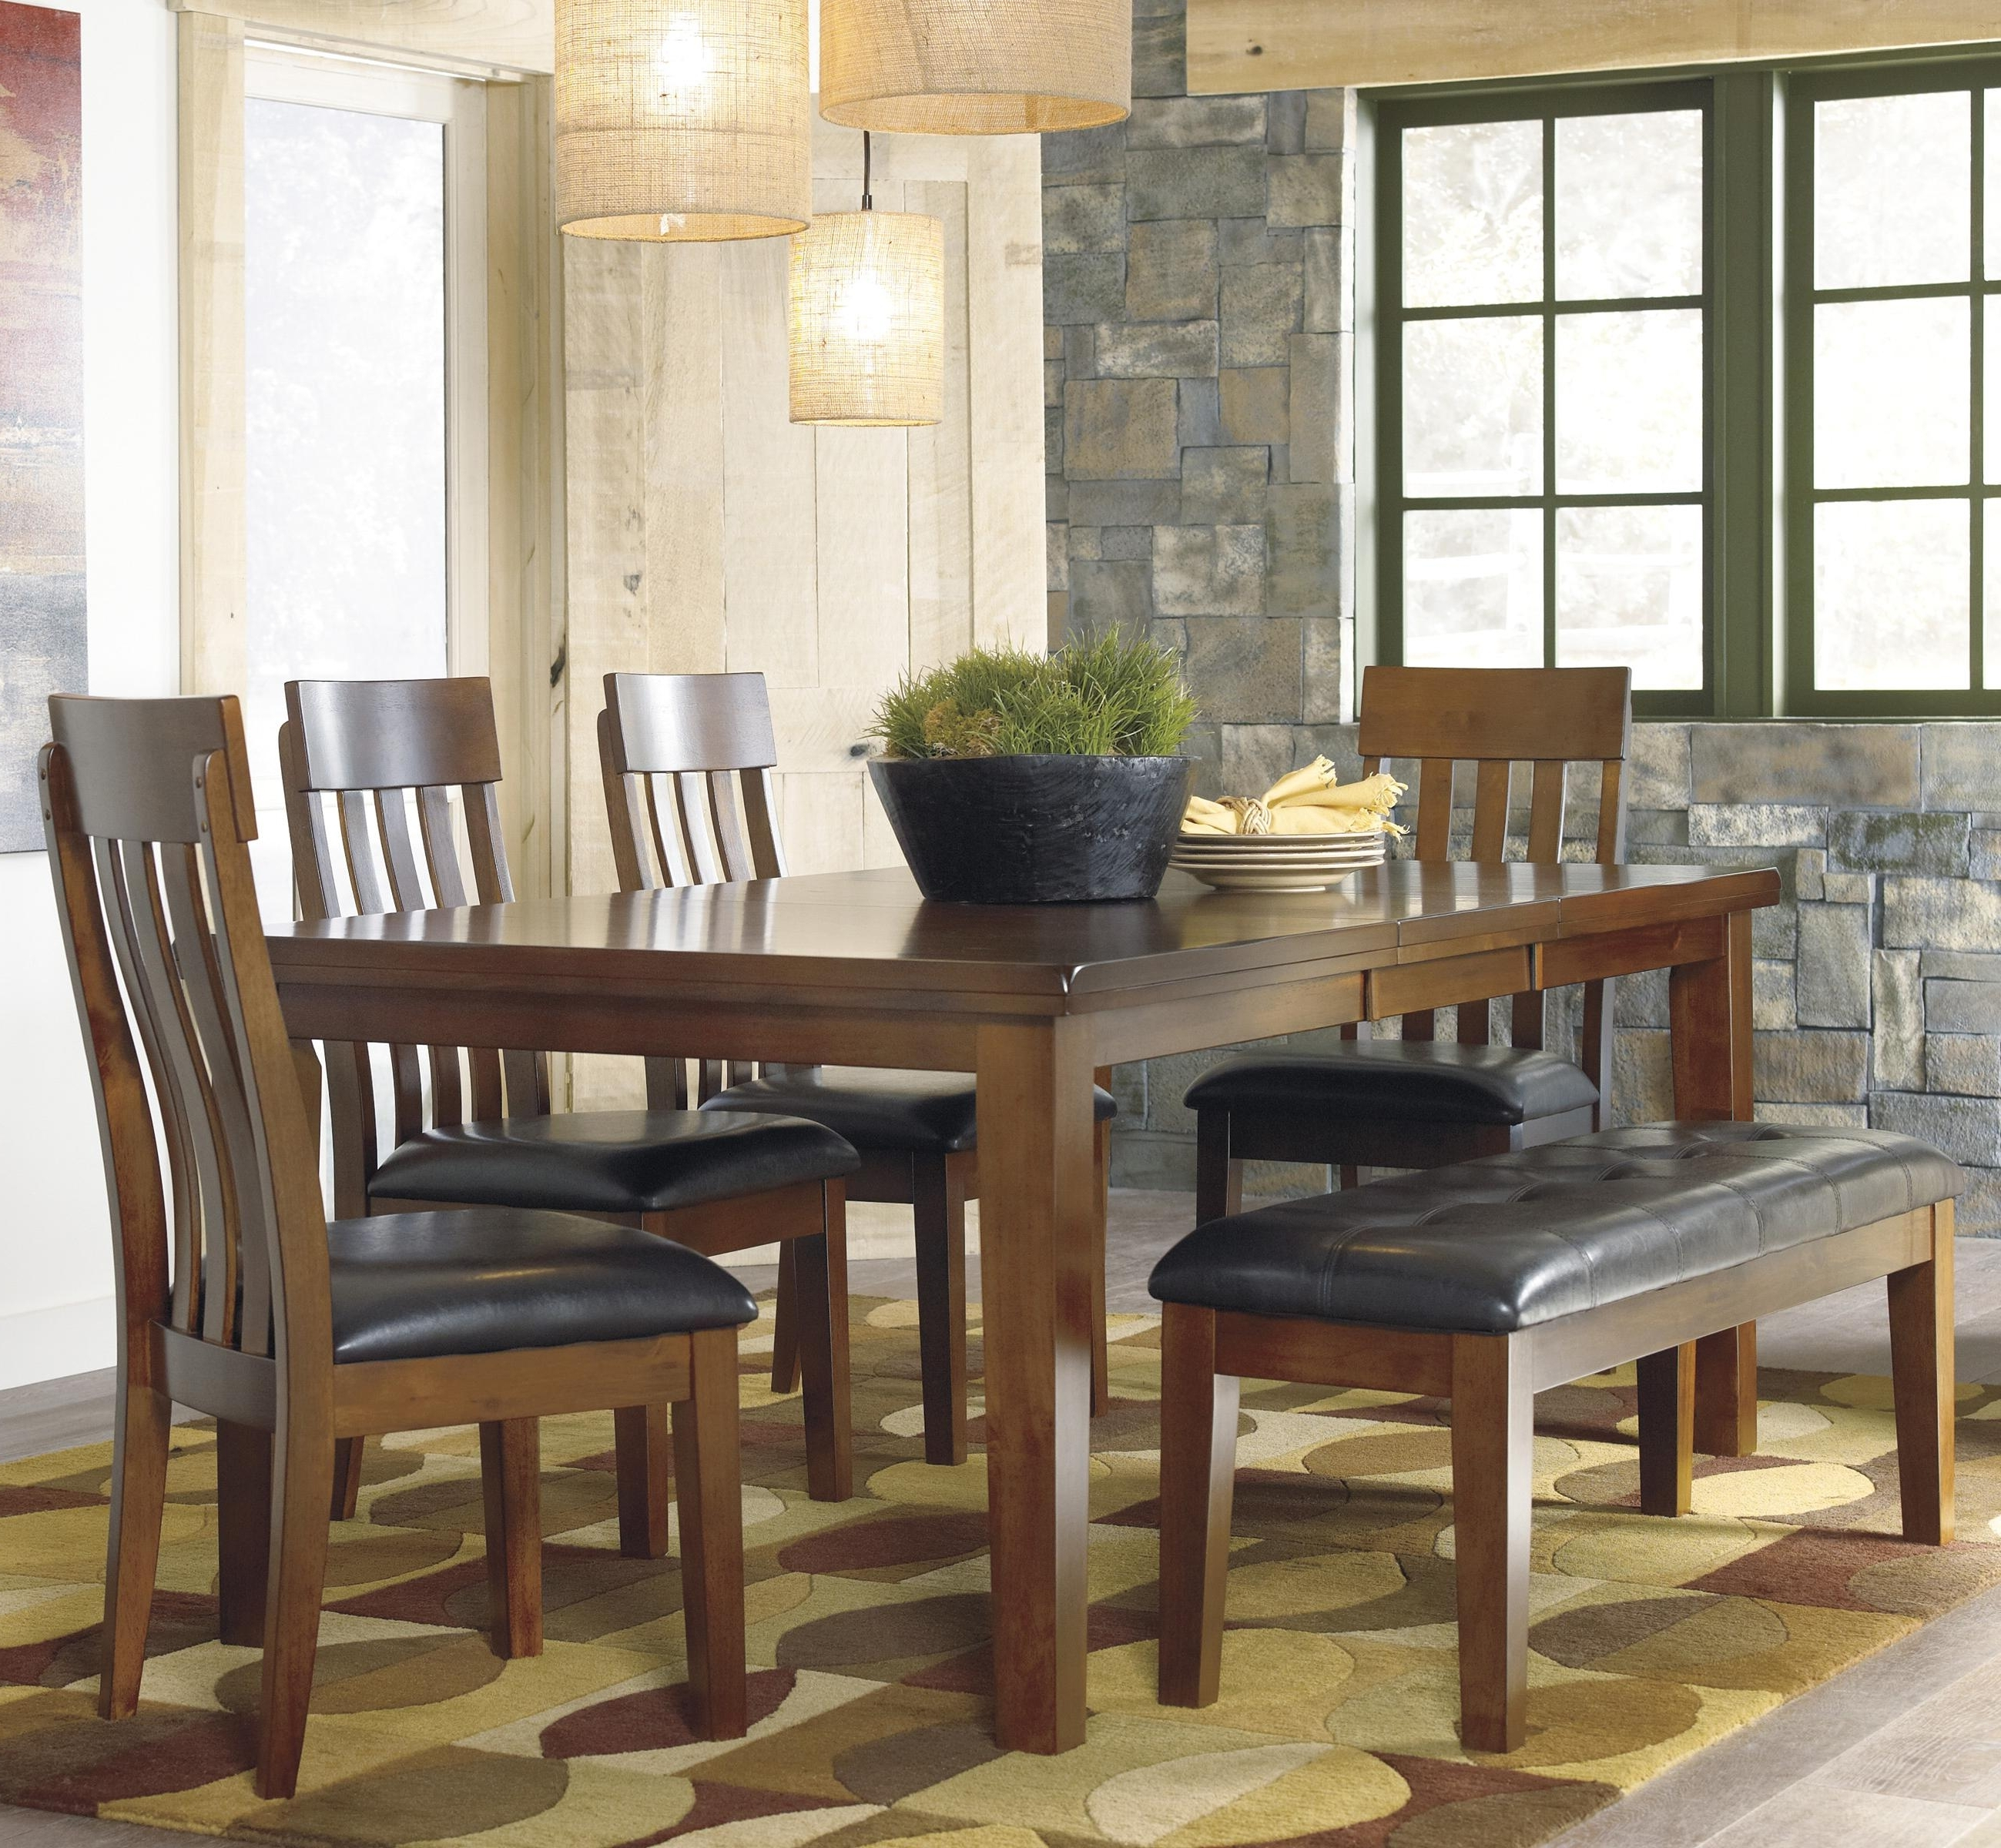 Patterson 6 Piece Dining Sets Regarding Best And Newest Dinning Room. 6 Piece Dining Room Sets – Home Design 2019 (Gallery 24 of 25)